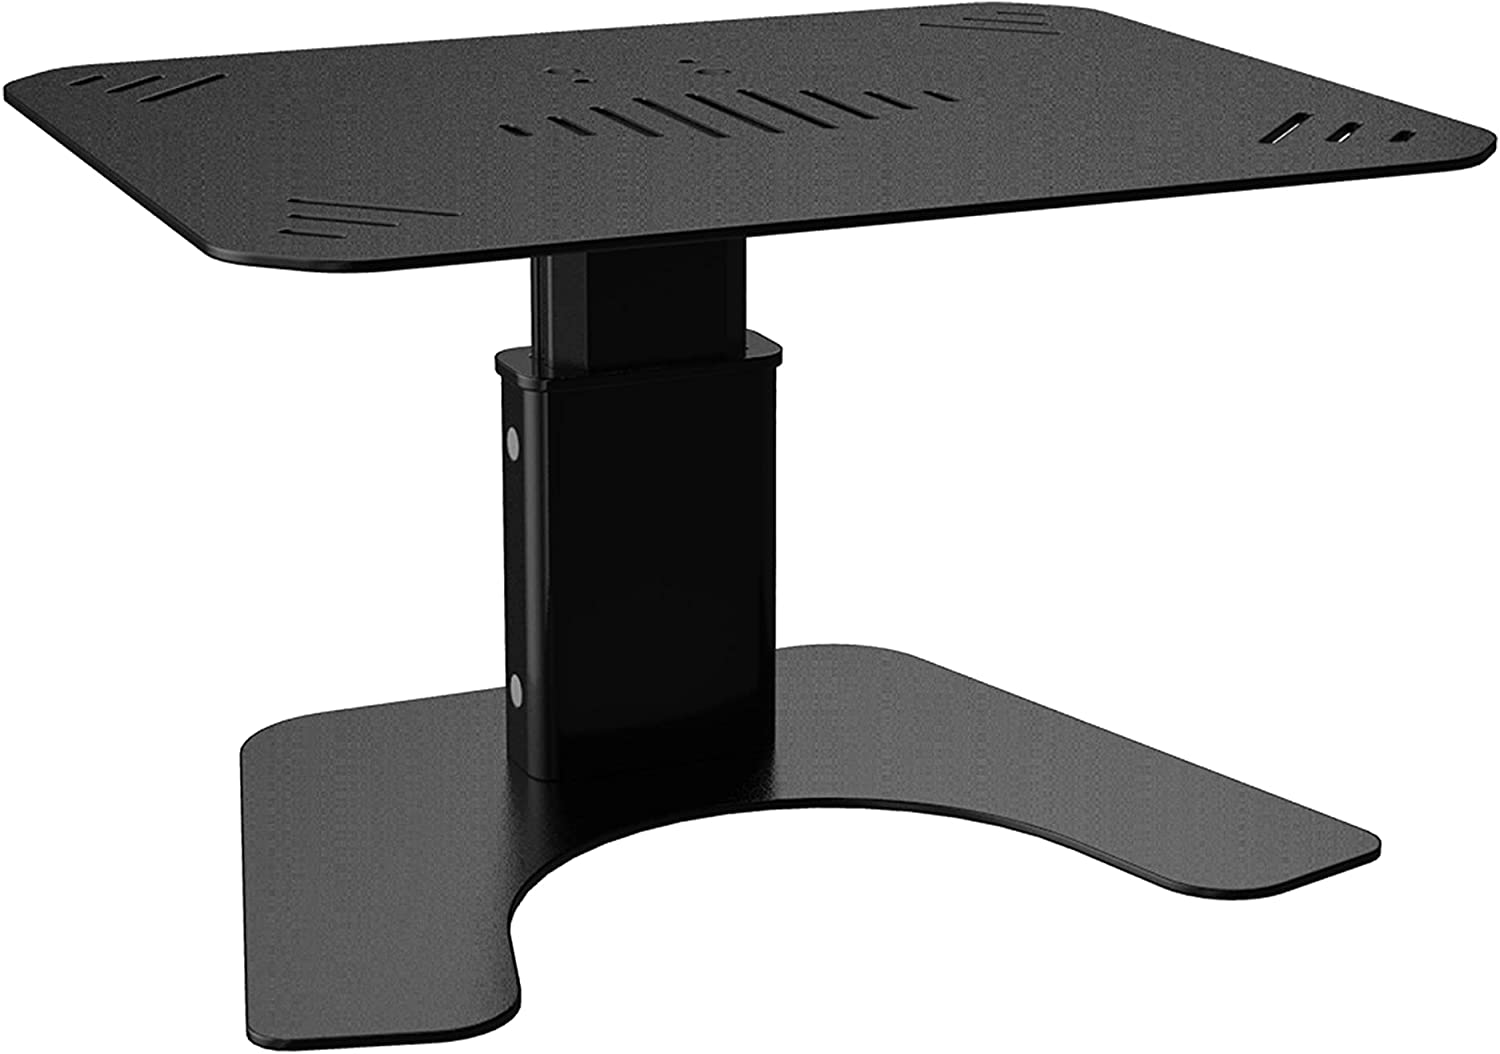 SOUNDANCE Monitor Stand, Computer Monitor Riser for Desk, Upgraded Height Adjustable, Metal Holder Compatible with TV, PC Screen, Laptop, LCD Under 27 Inches, Black